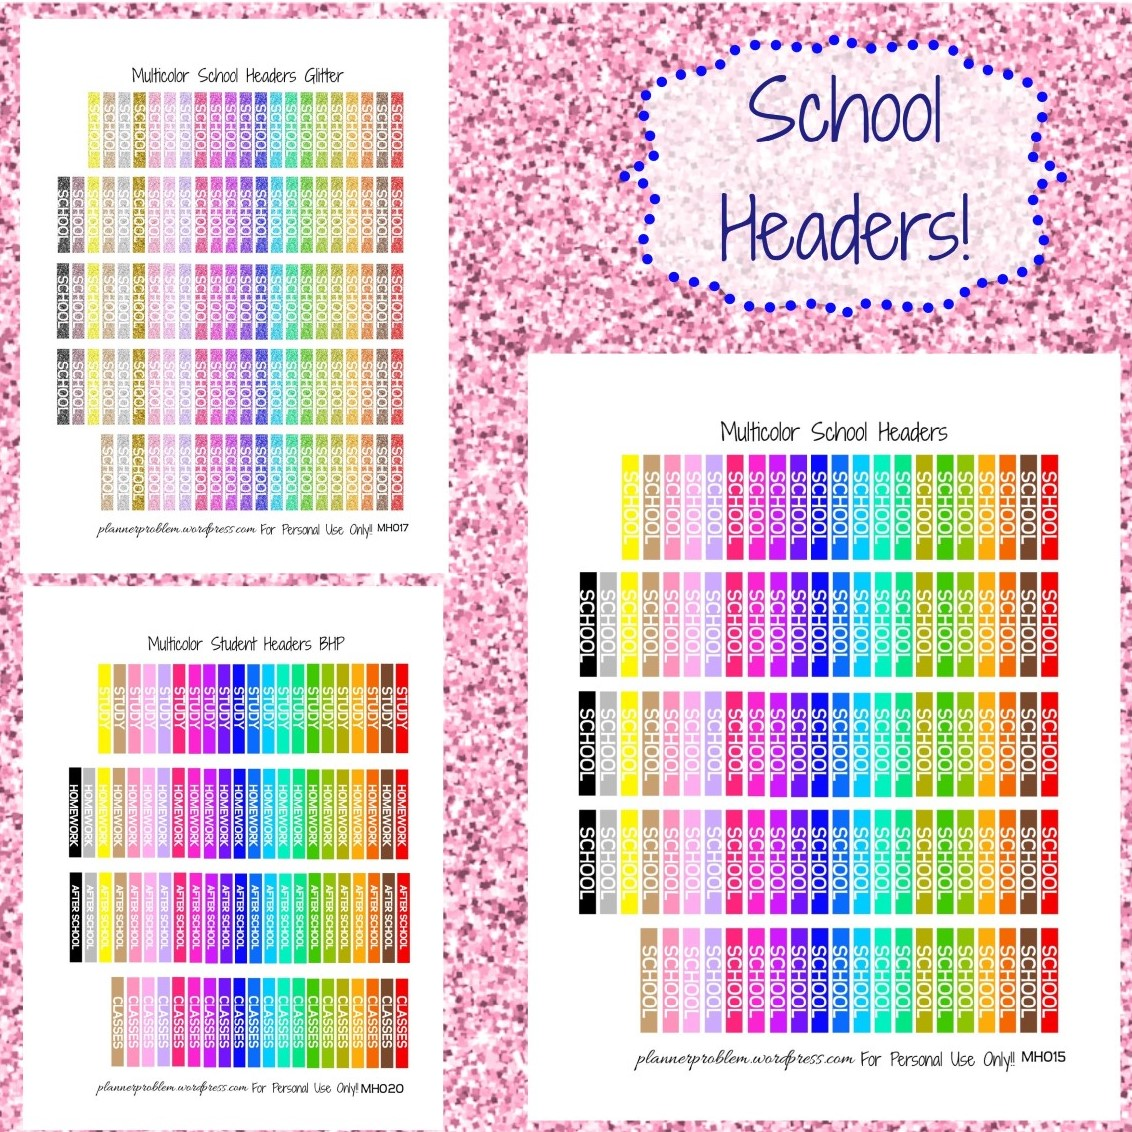 photograph about Printable School Planner called Multicolor Faculty Headers! Absolutely free Printable Planner Stickers